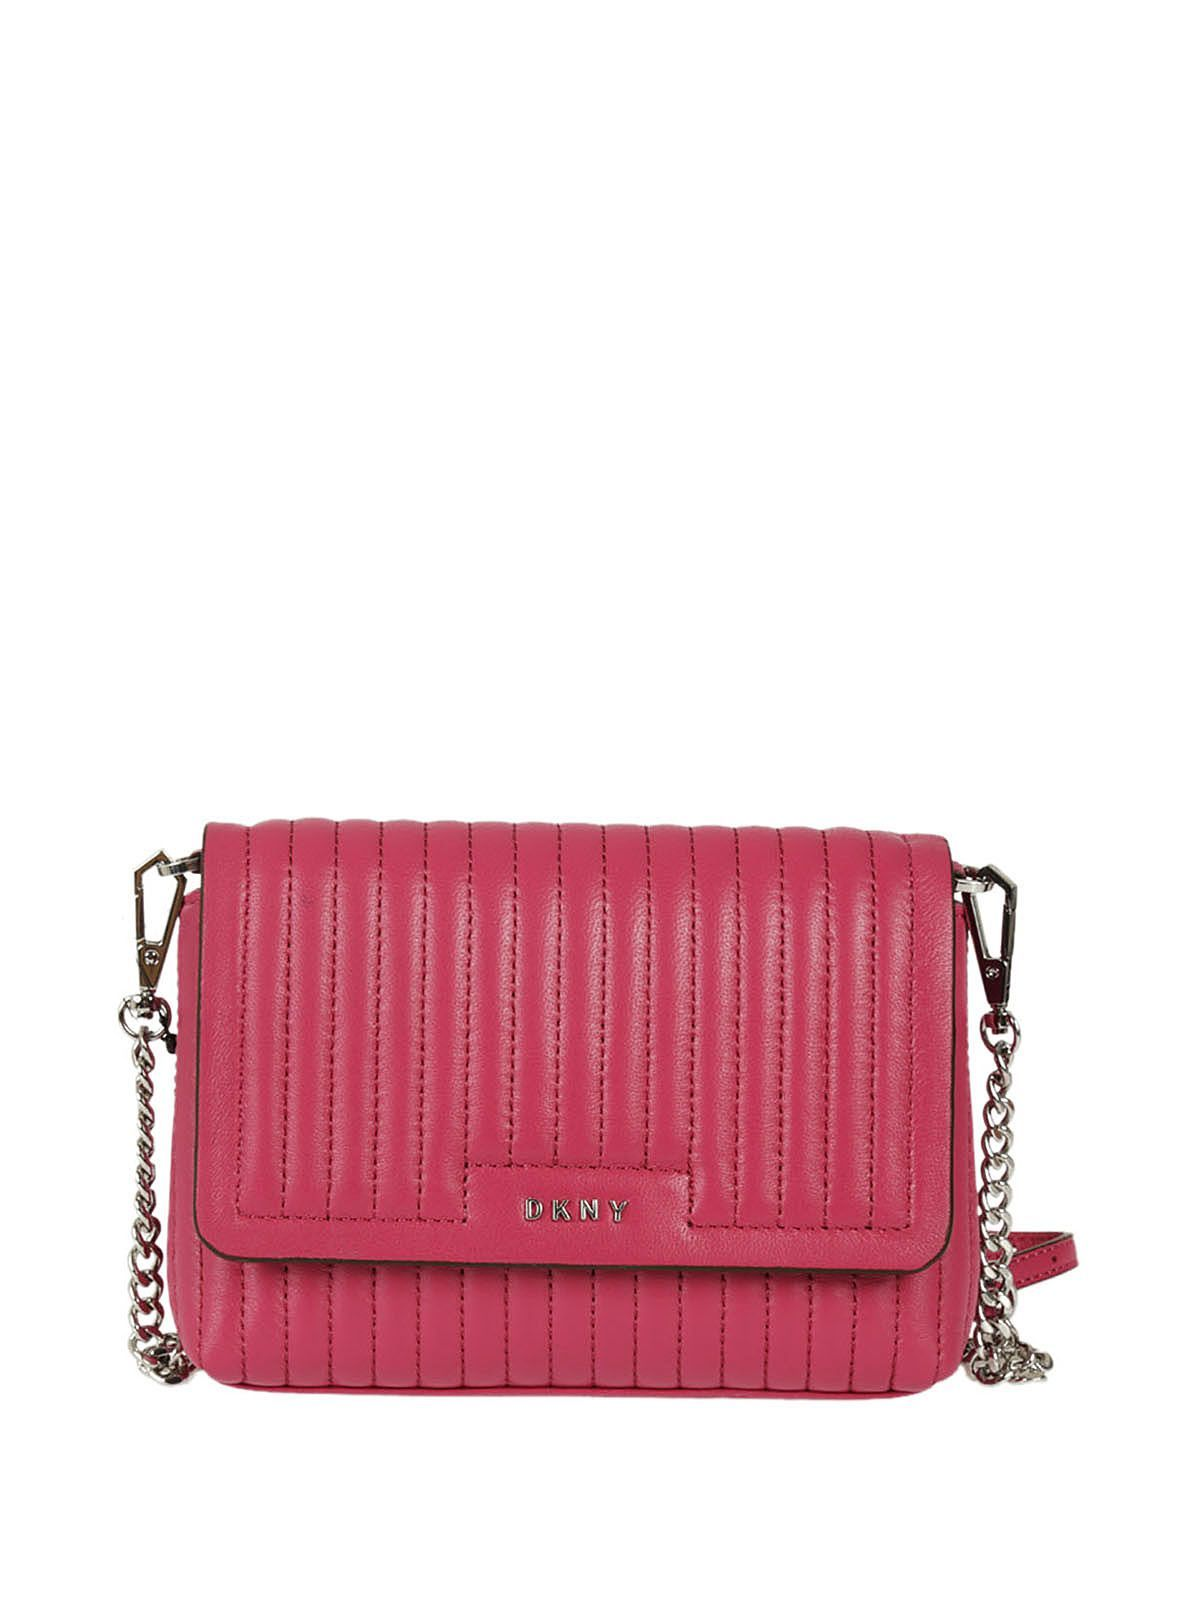 DKNY DKNY QUILTED SHOULDER BAG. #dkny #bags #shoulder bags ... : dkny quilted shoulder bag - Adamdwight.com